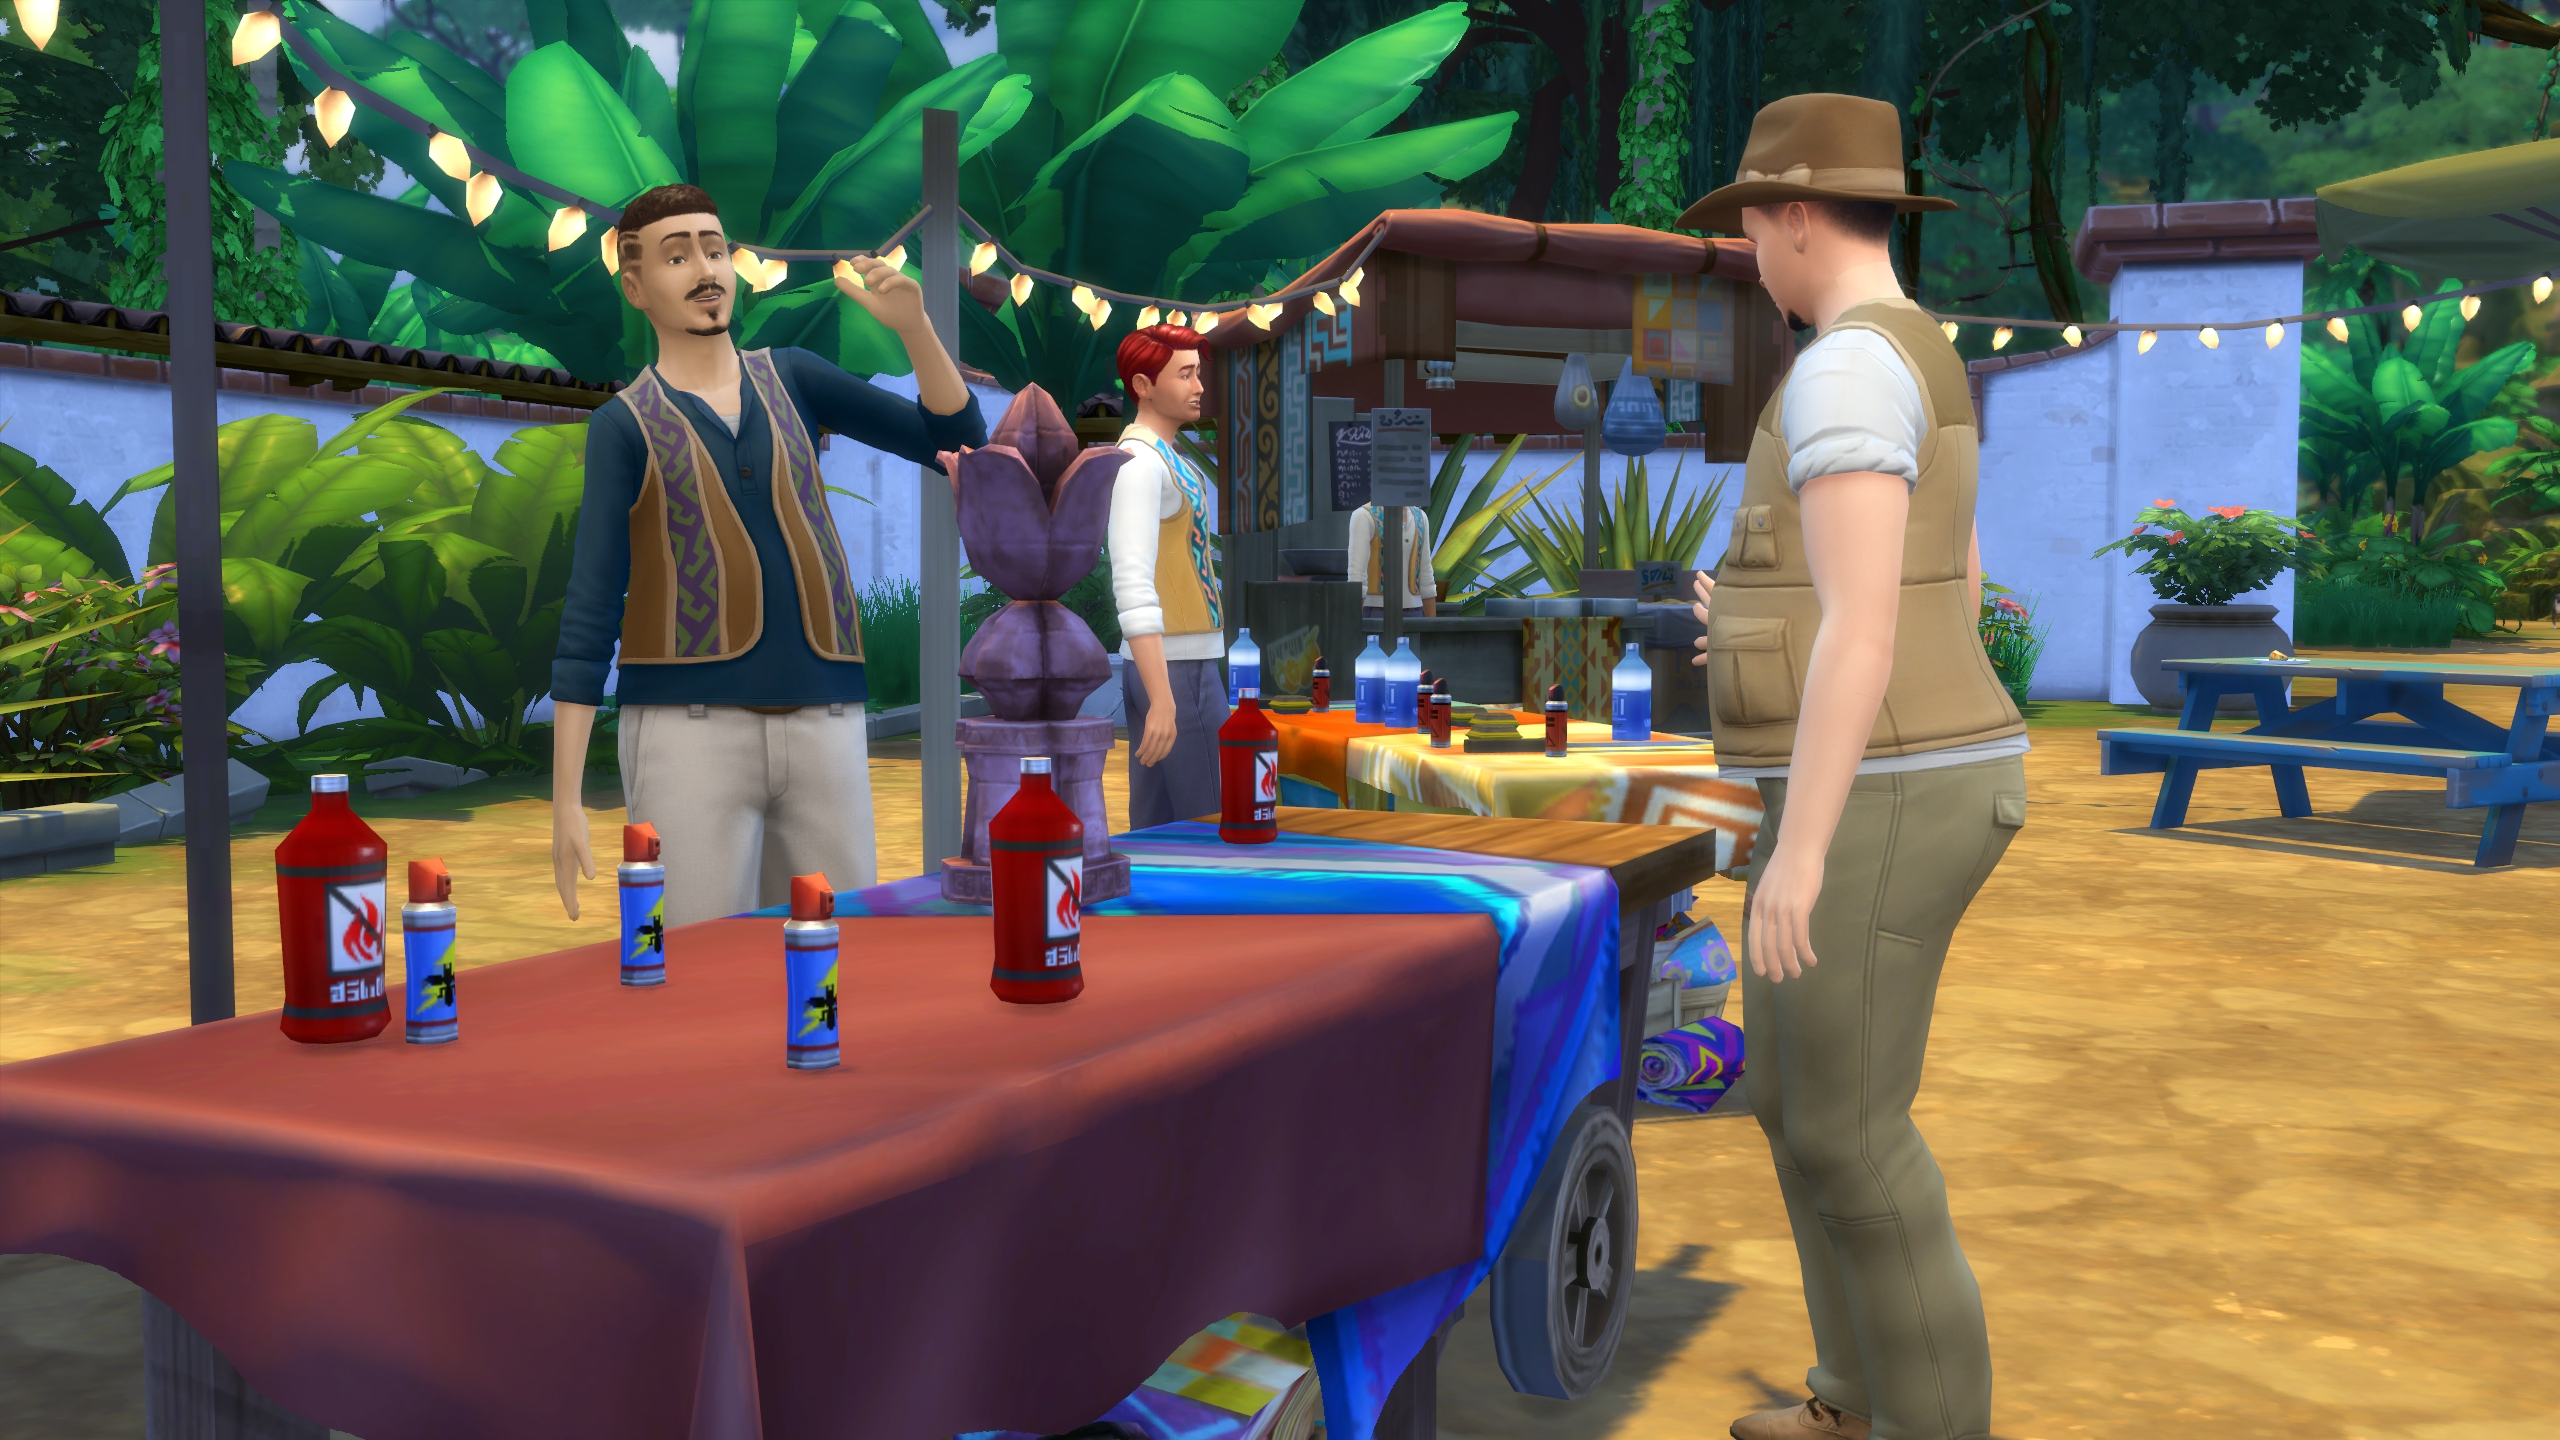 The Sims 4 Jungle Adventure: How to Explore the Jungle